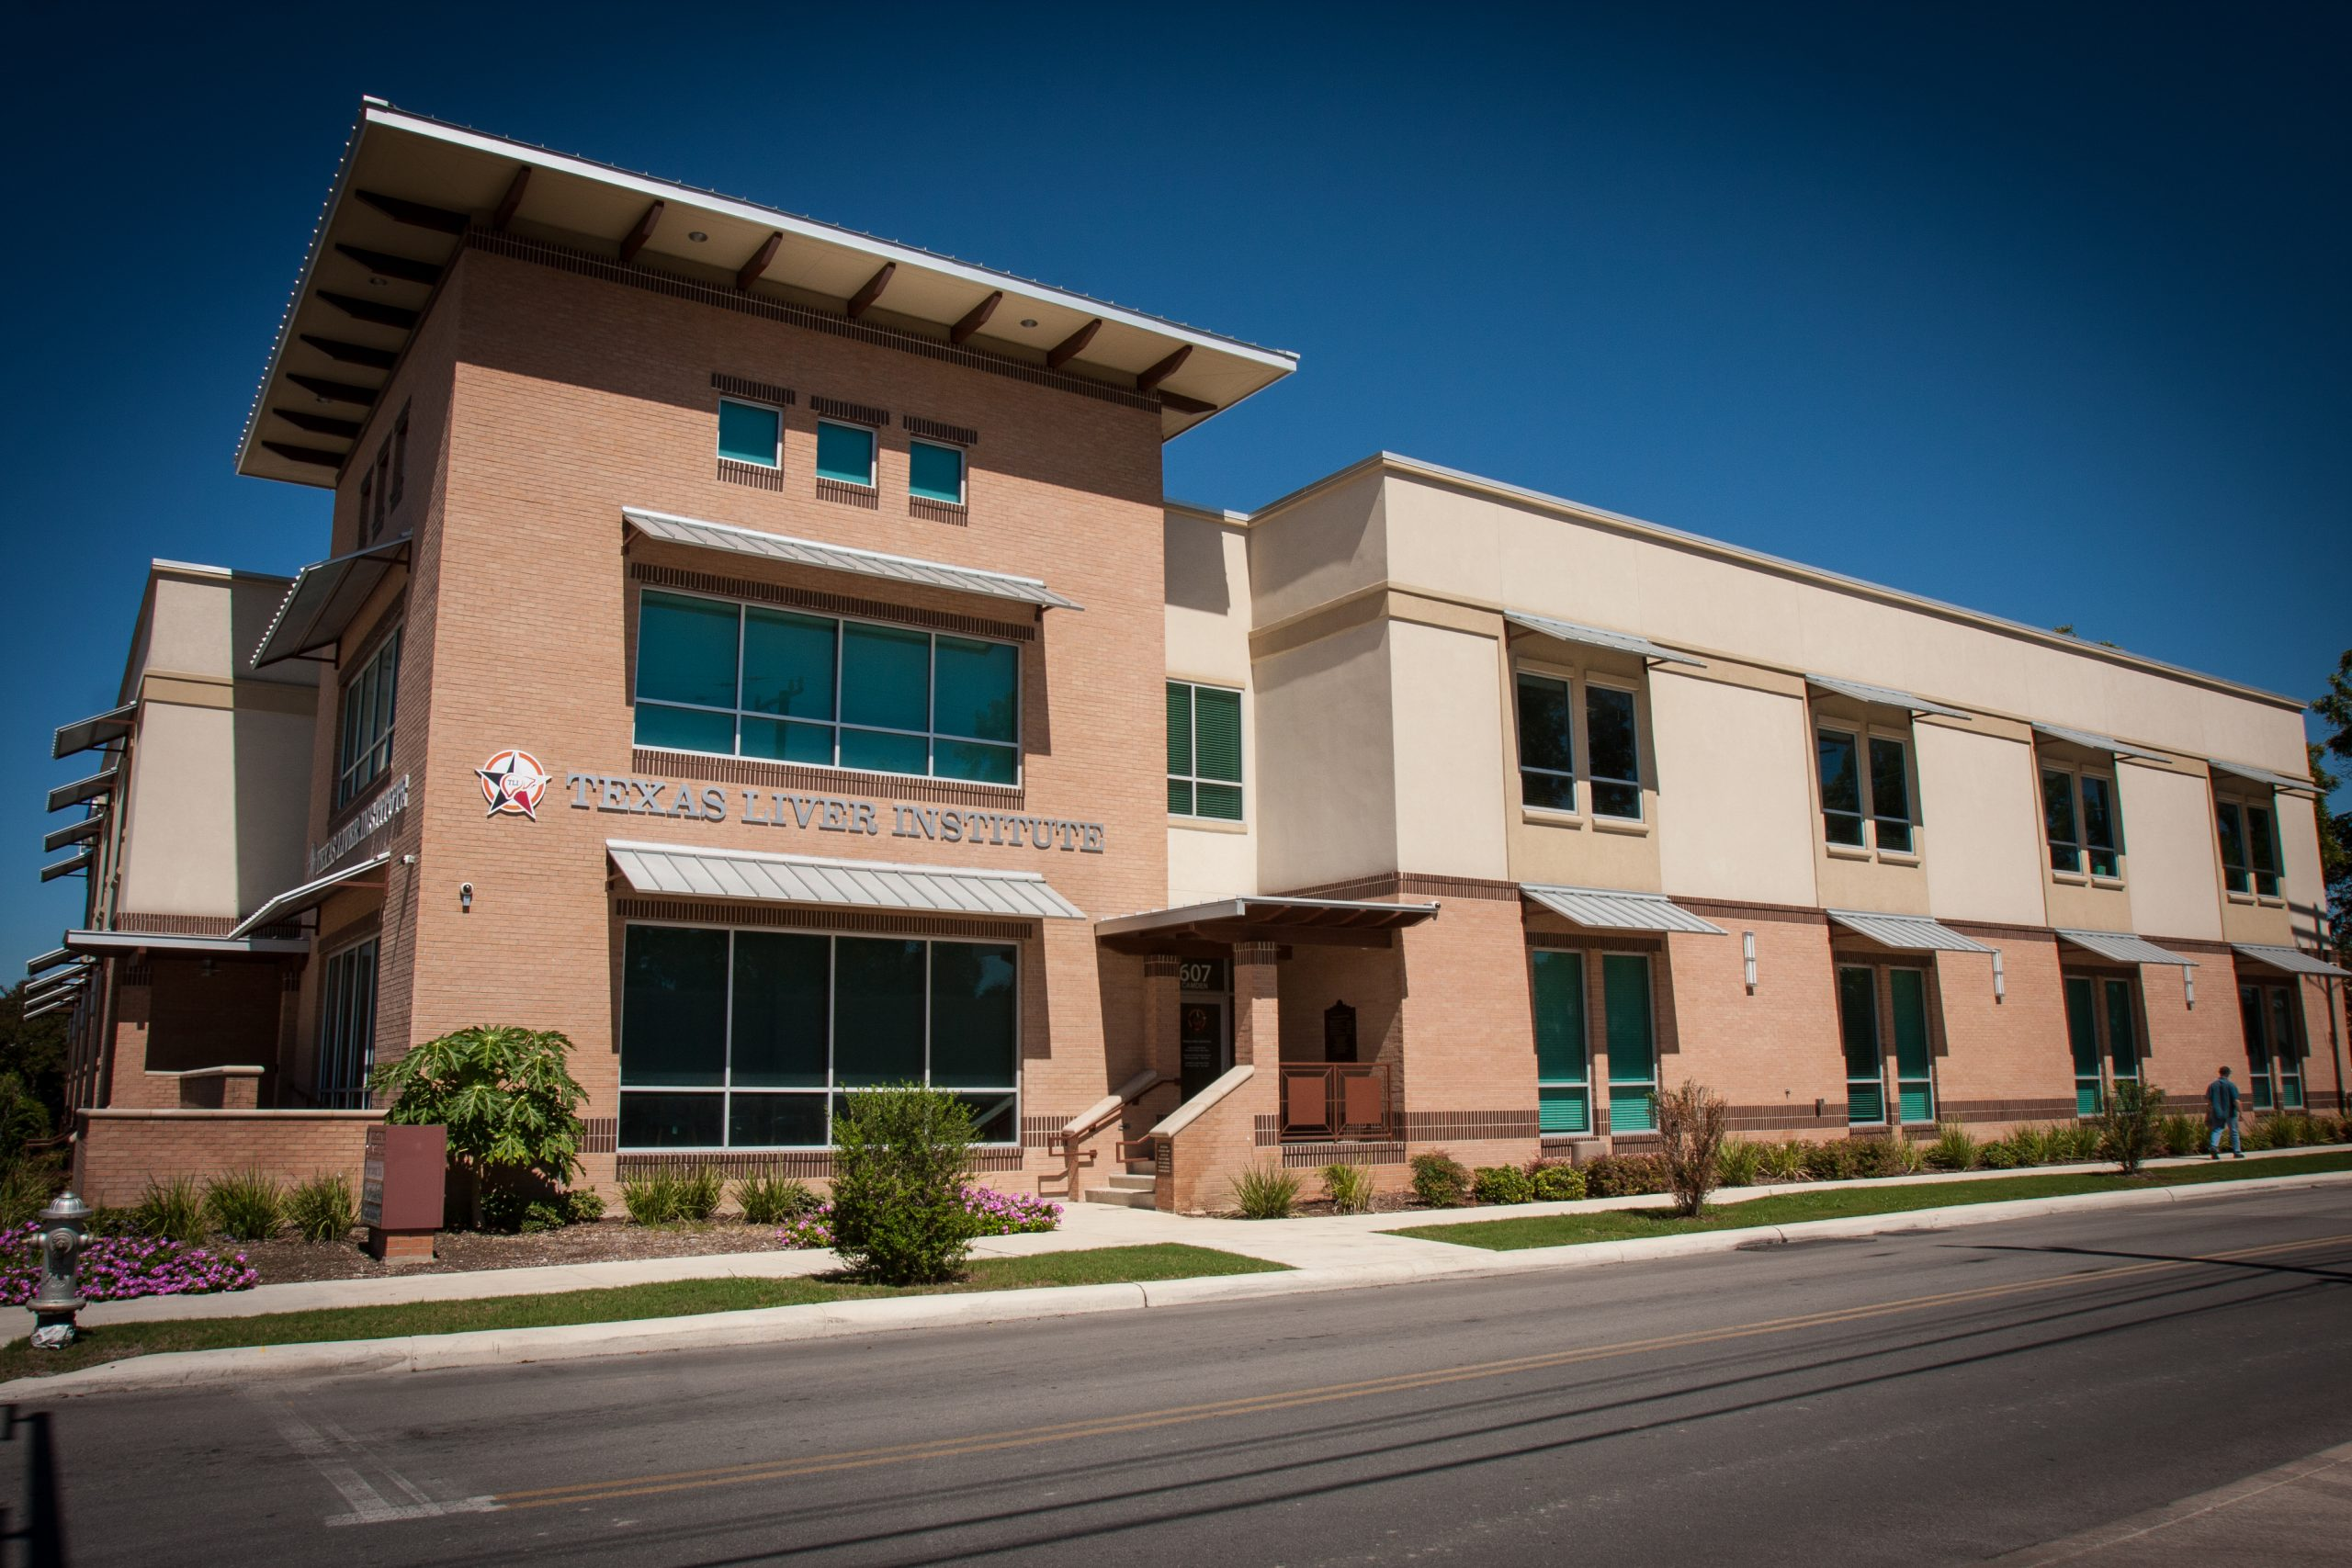 The Texas Liver Institute at 607 Camden Street. Courtesy photo.